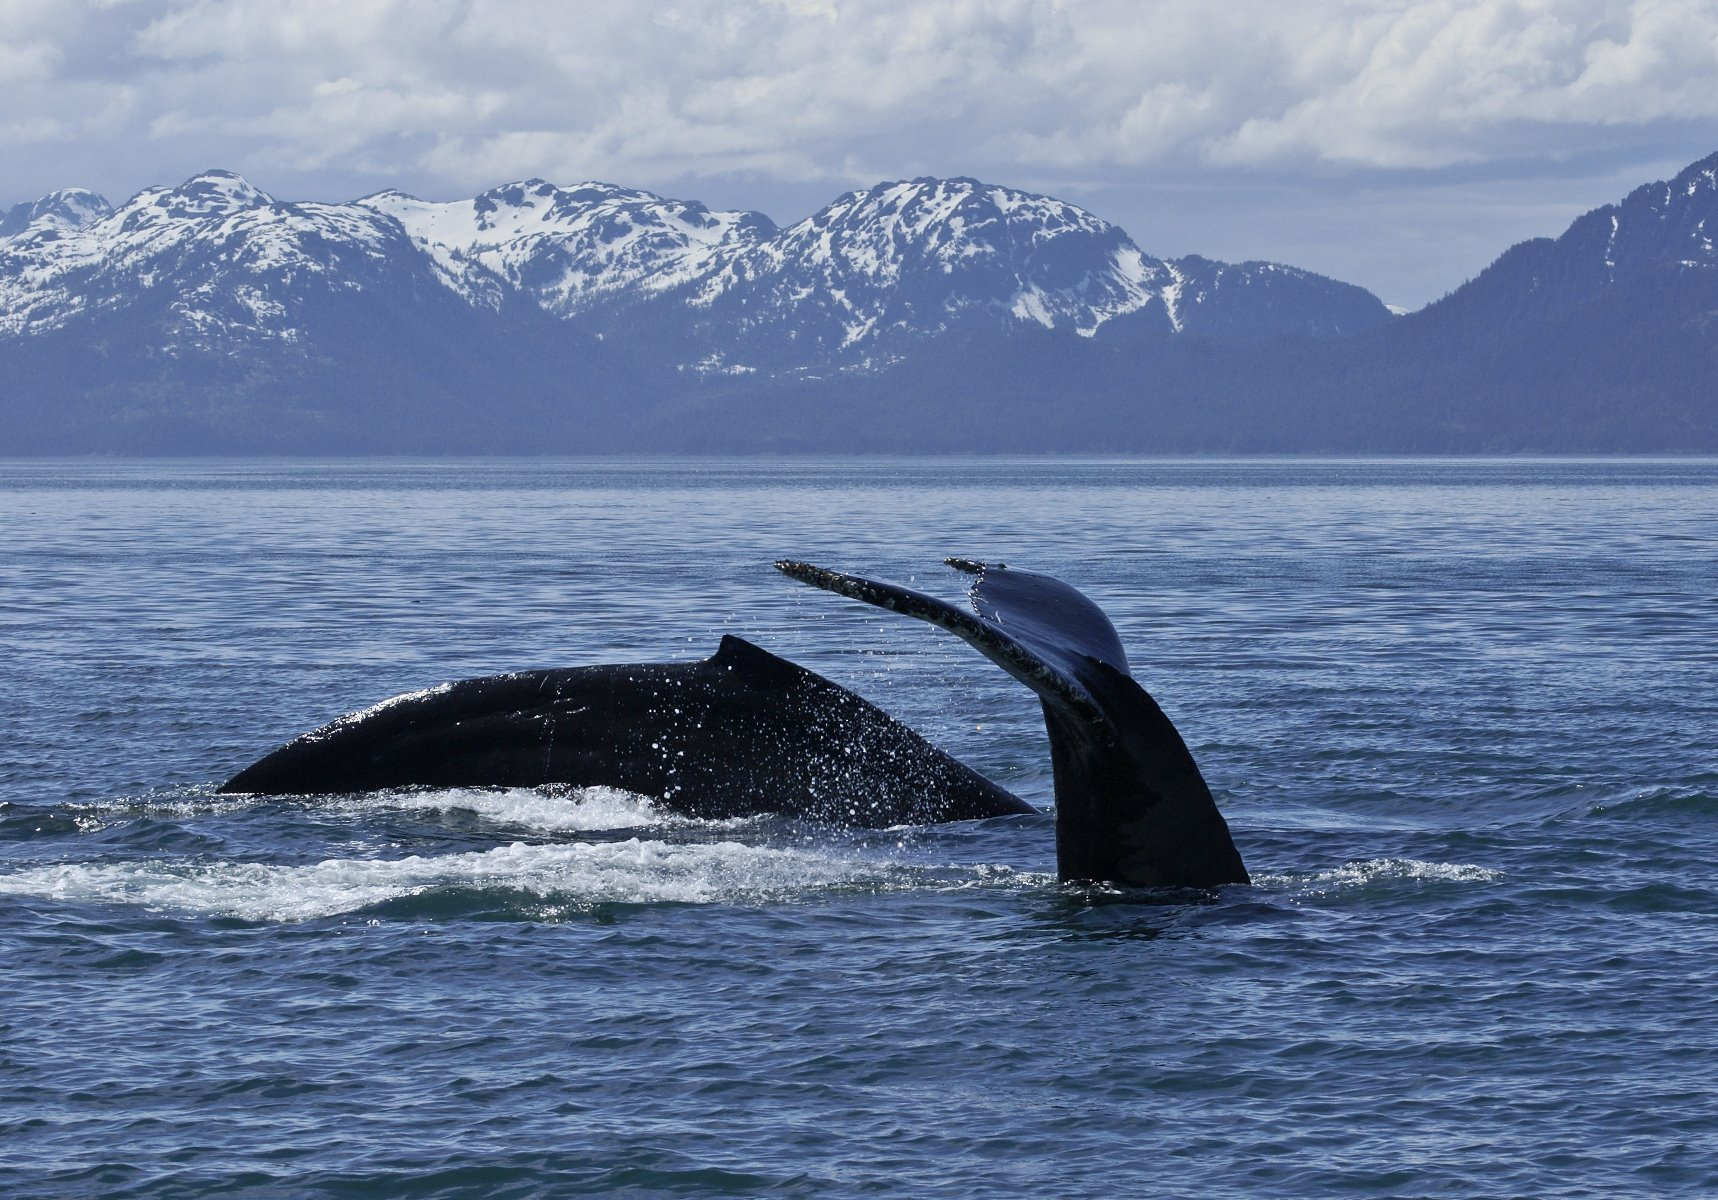 Humpback whales take the plunge.